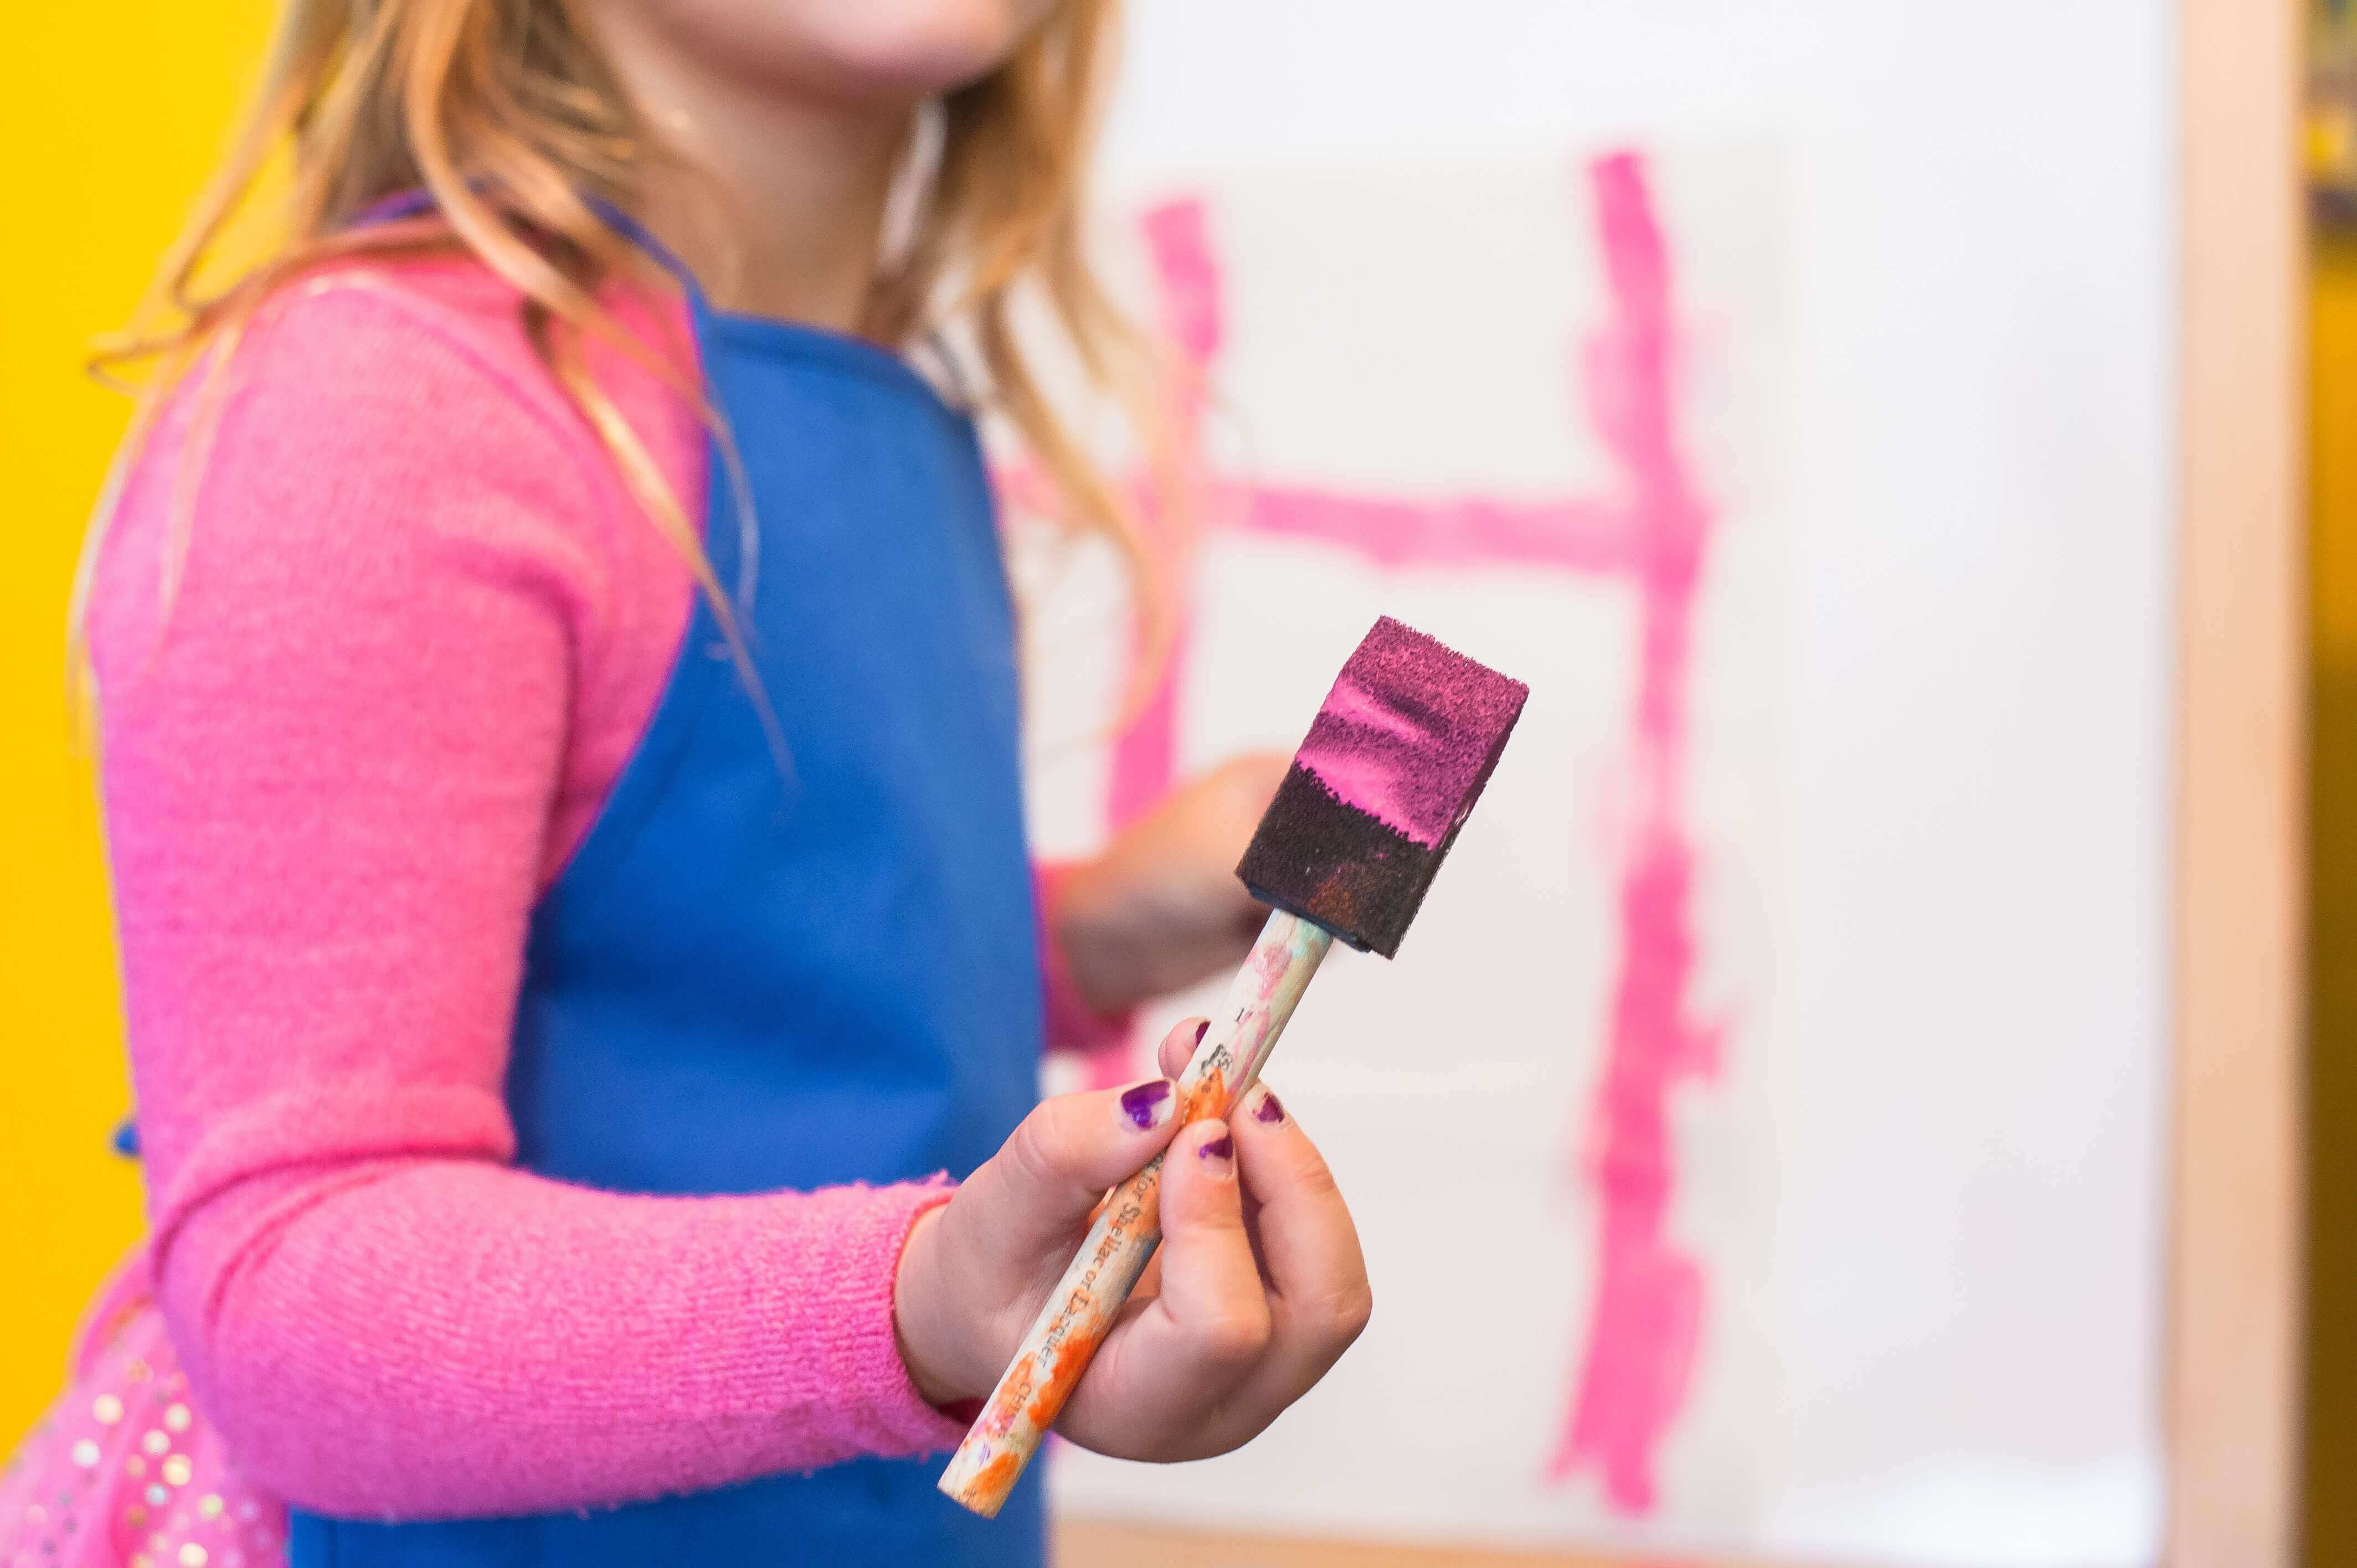 a little girl painting with pink paint.